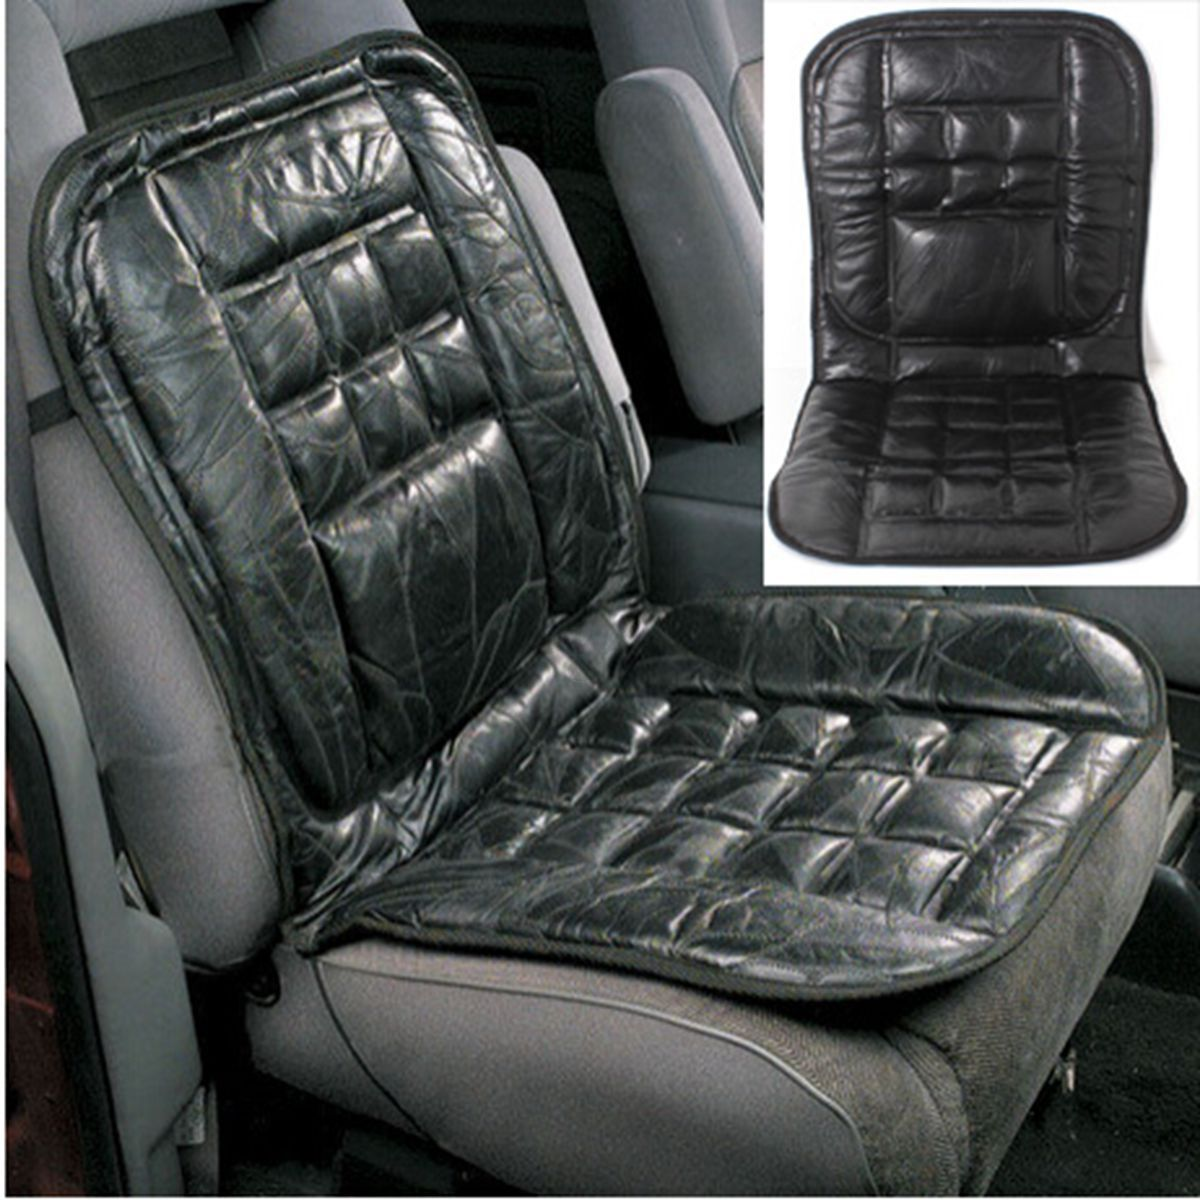 leather chair covers the best protection modern grey dining chairs back support seat cover cushion massage car